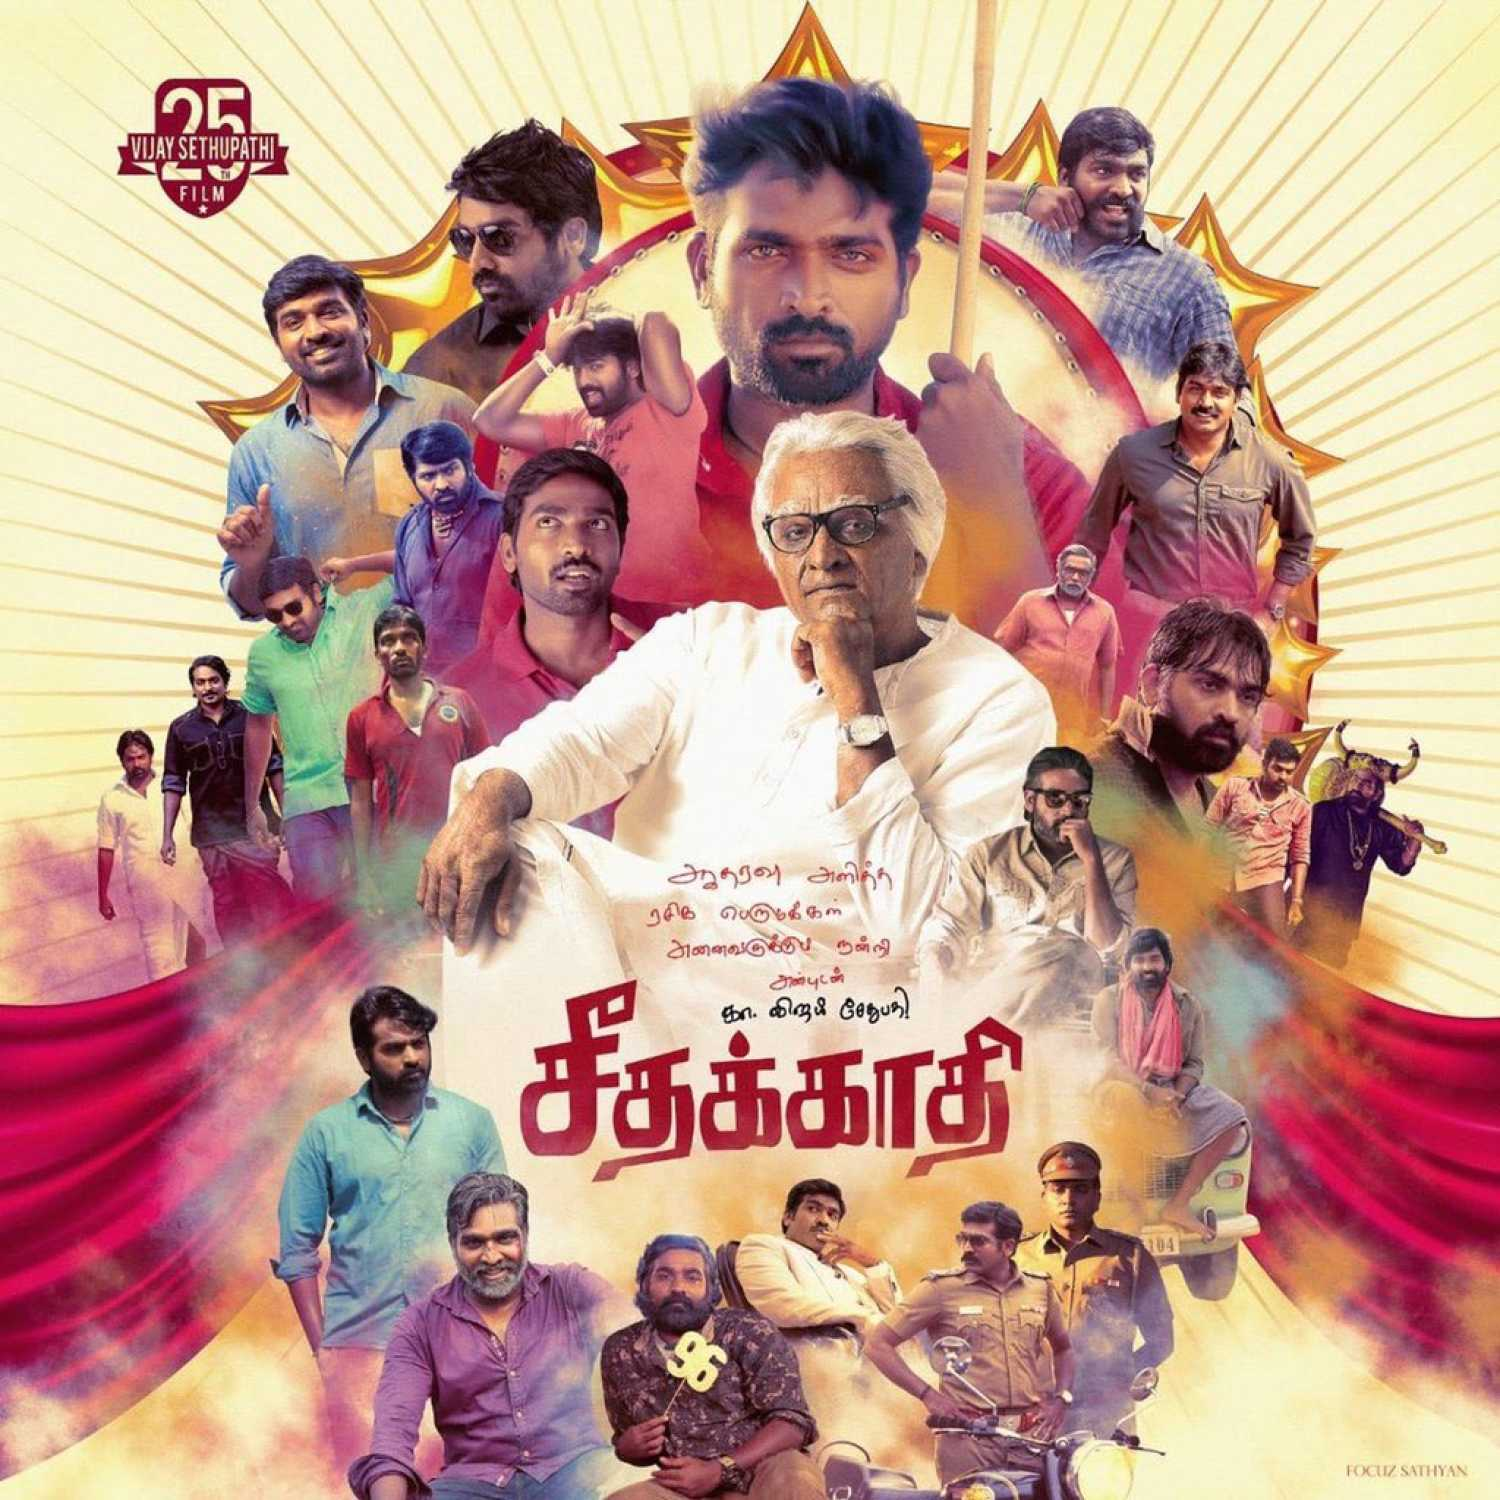 Seethakaathi (2020) 720p HEVC HDRip Hindi Dubbed Full South Movie x265 AAC [650MB]